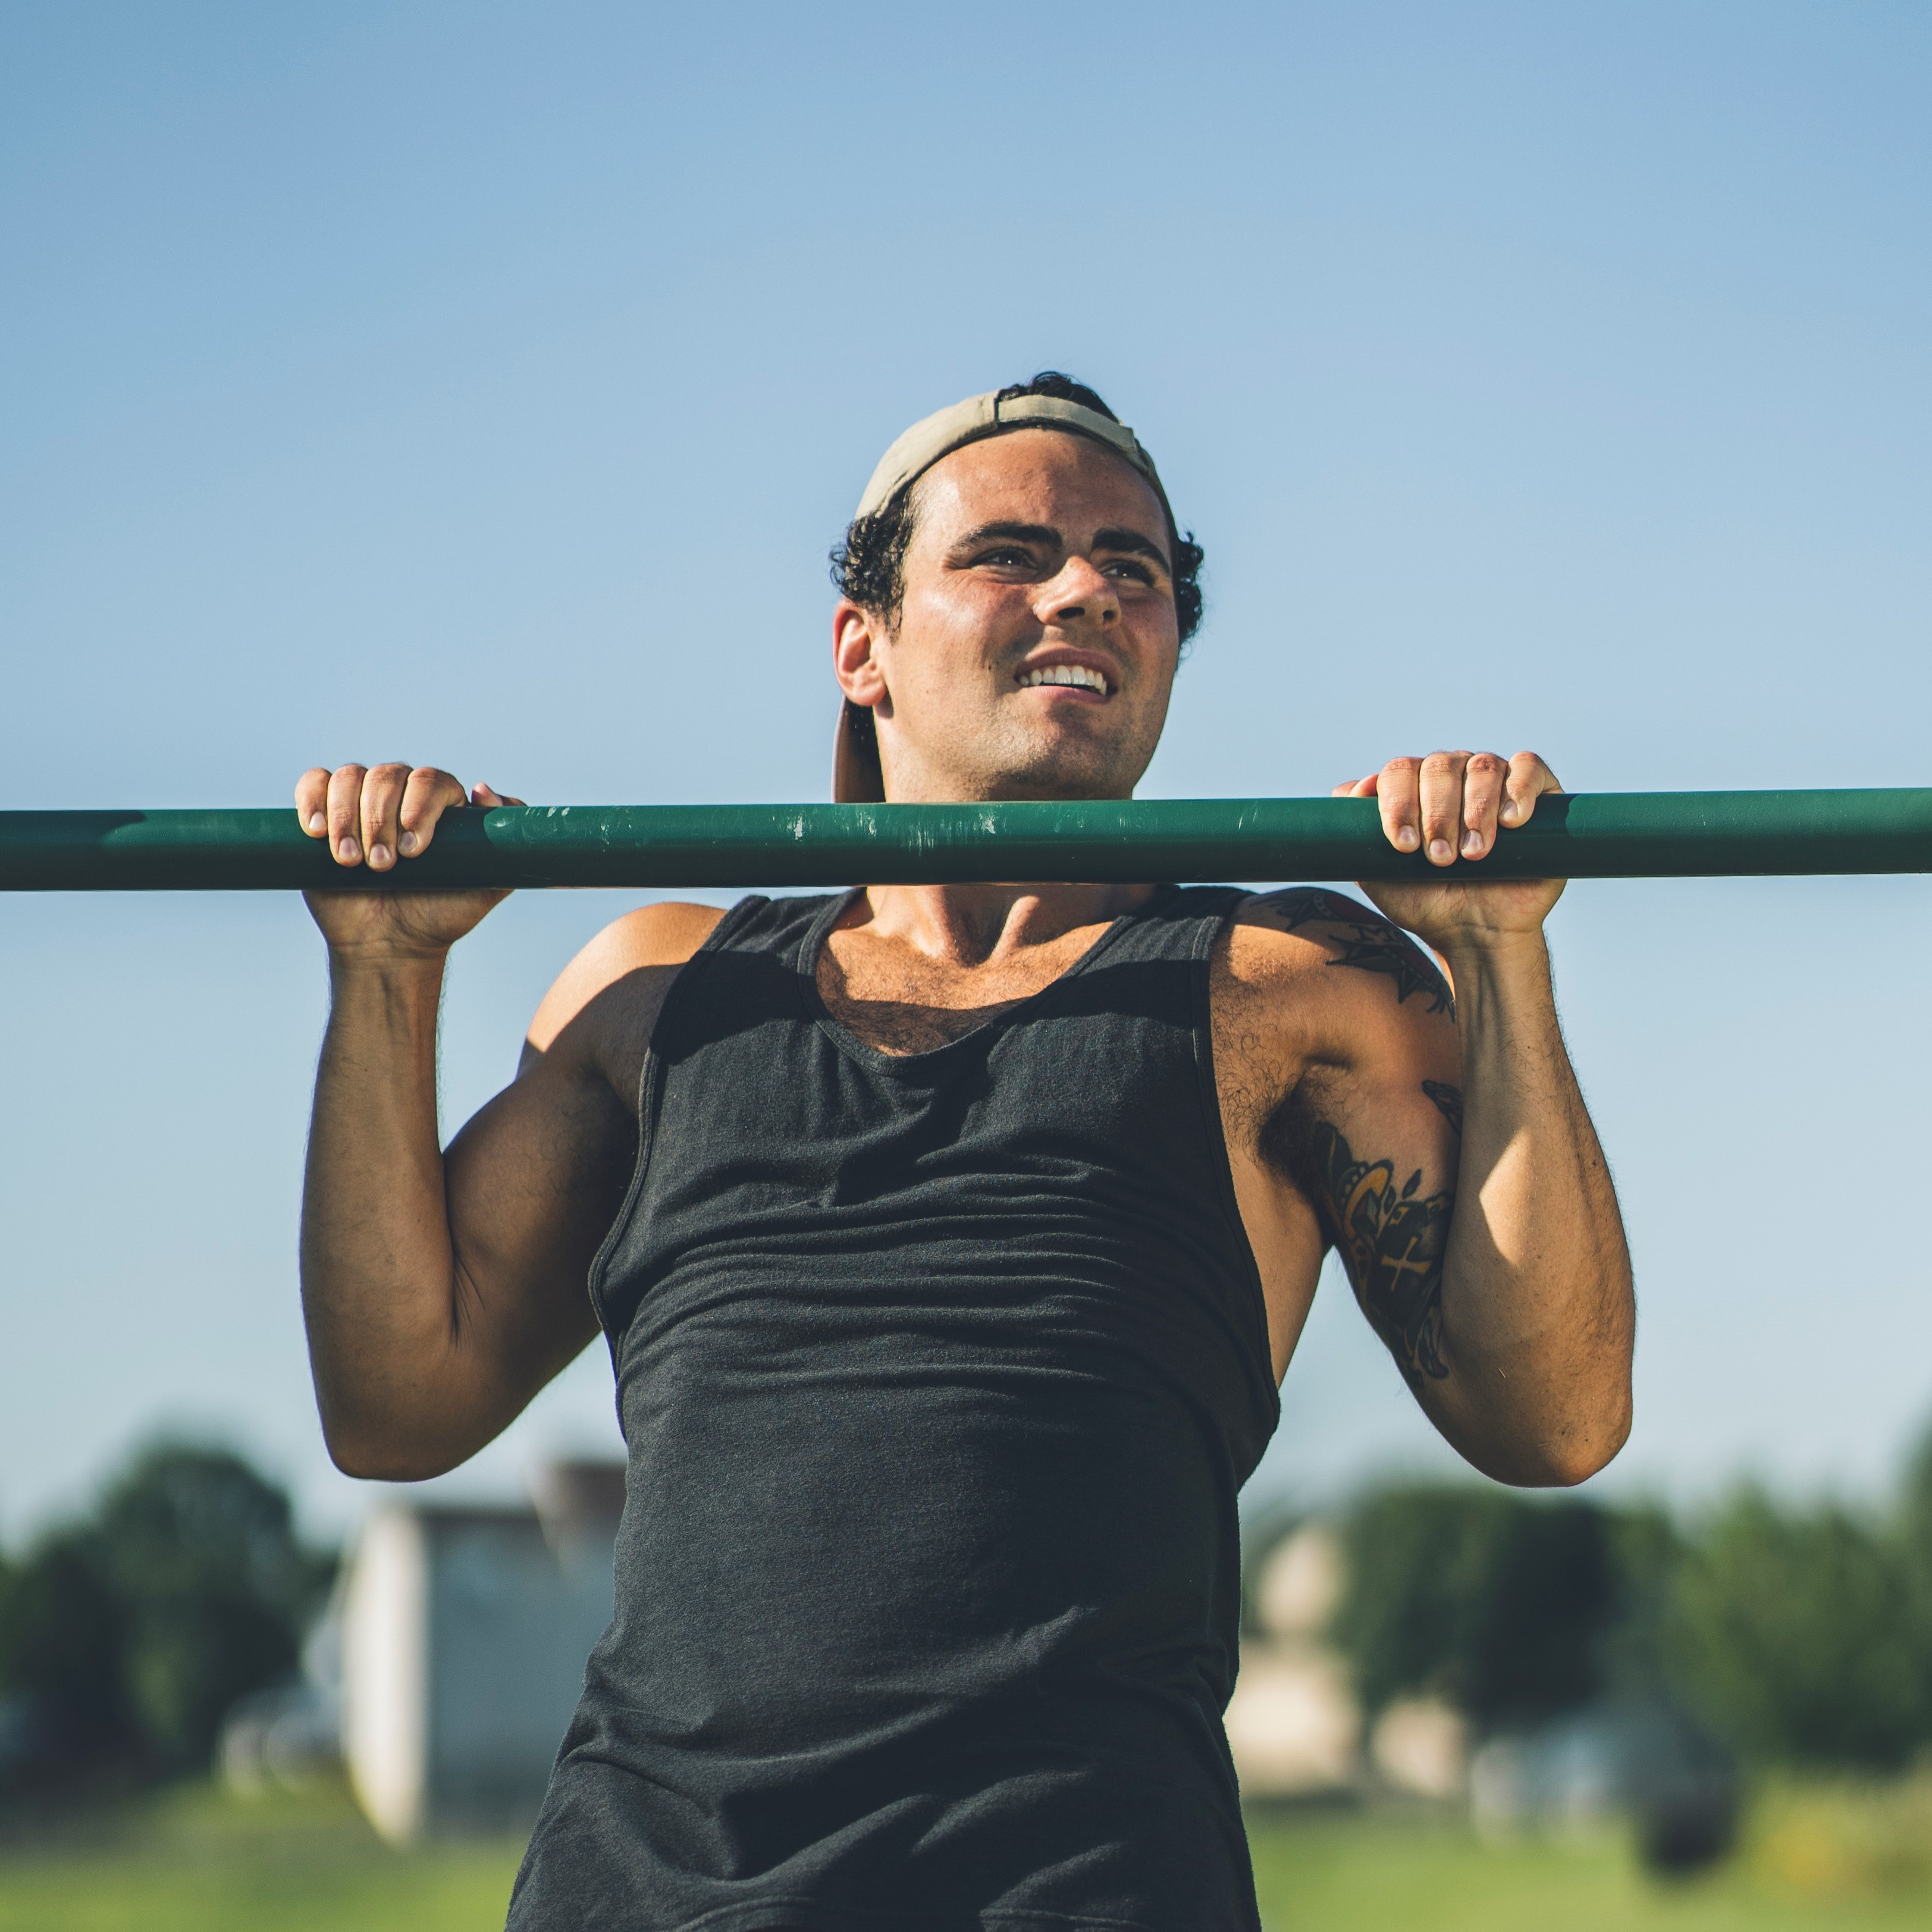 Bodyweight Workout: The Axle Bodyweight Course